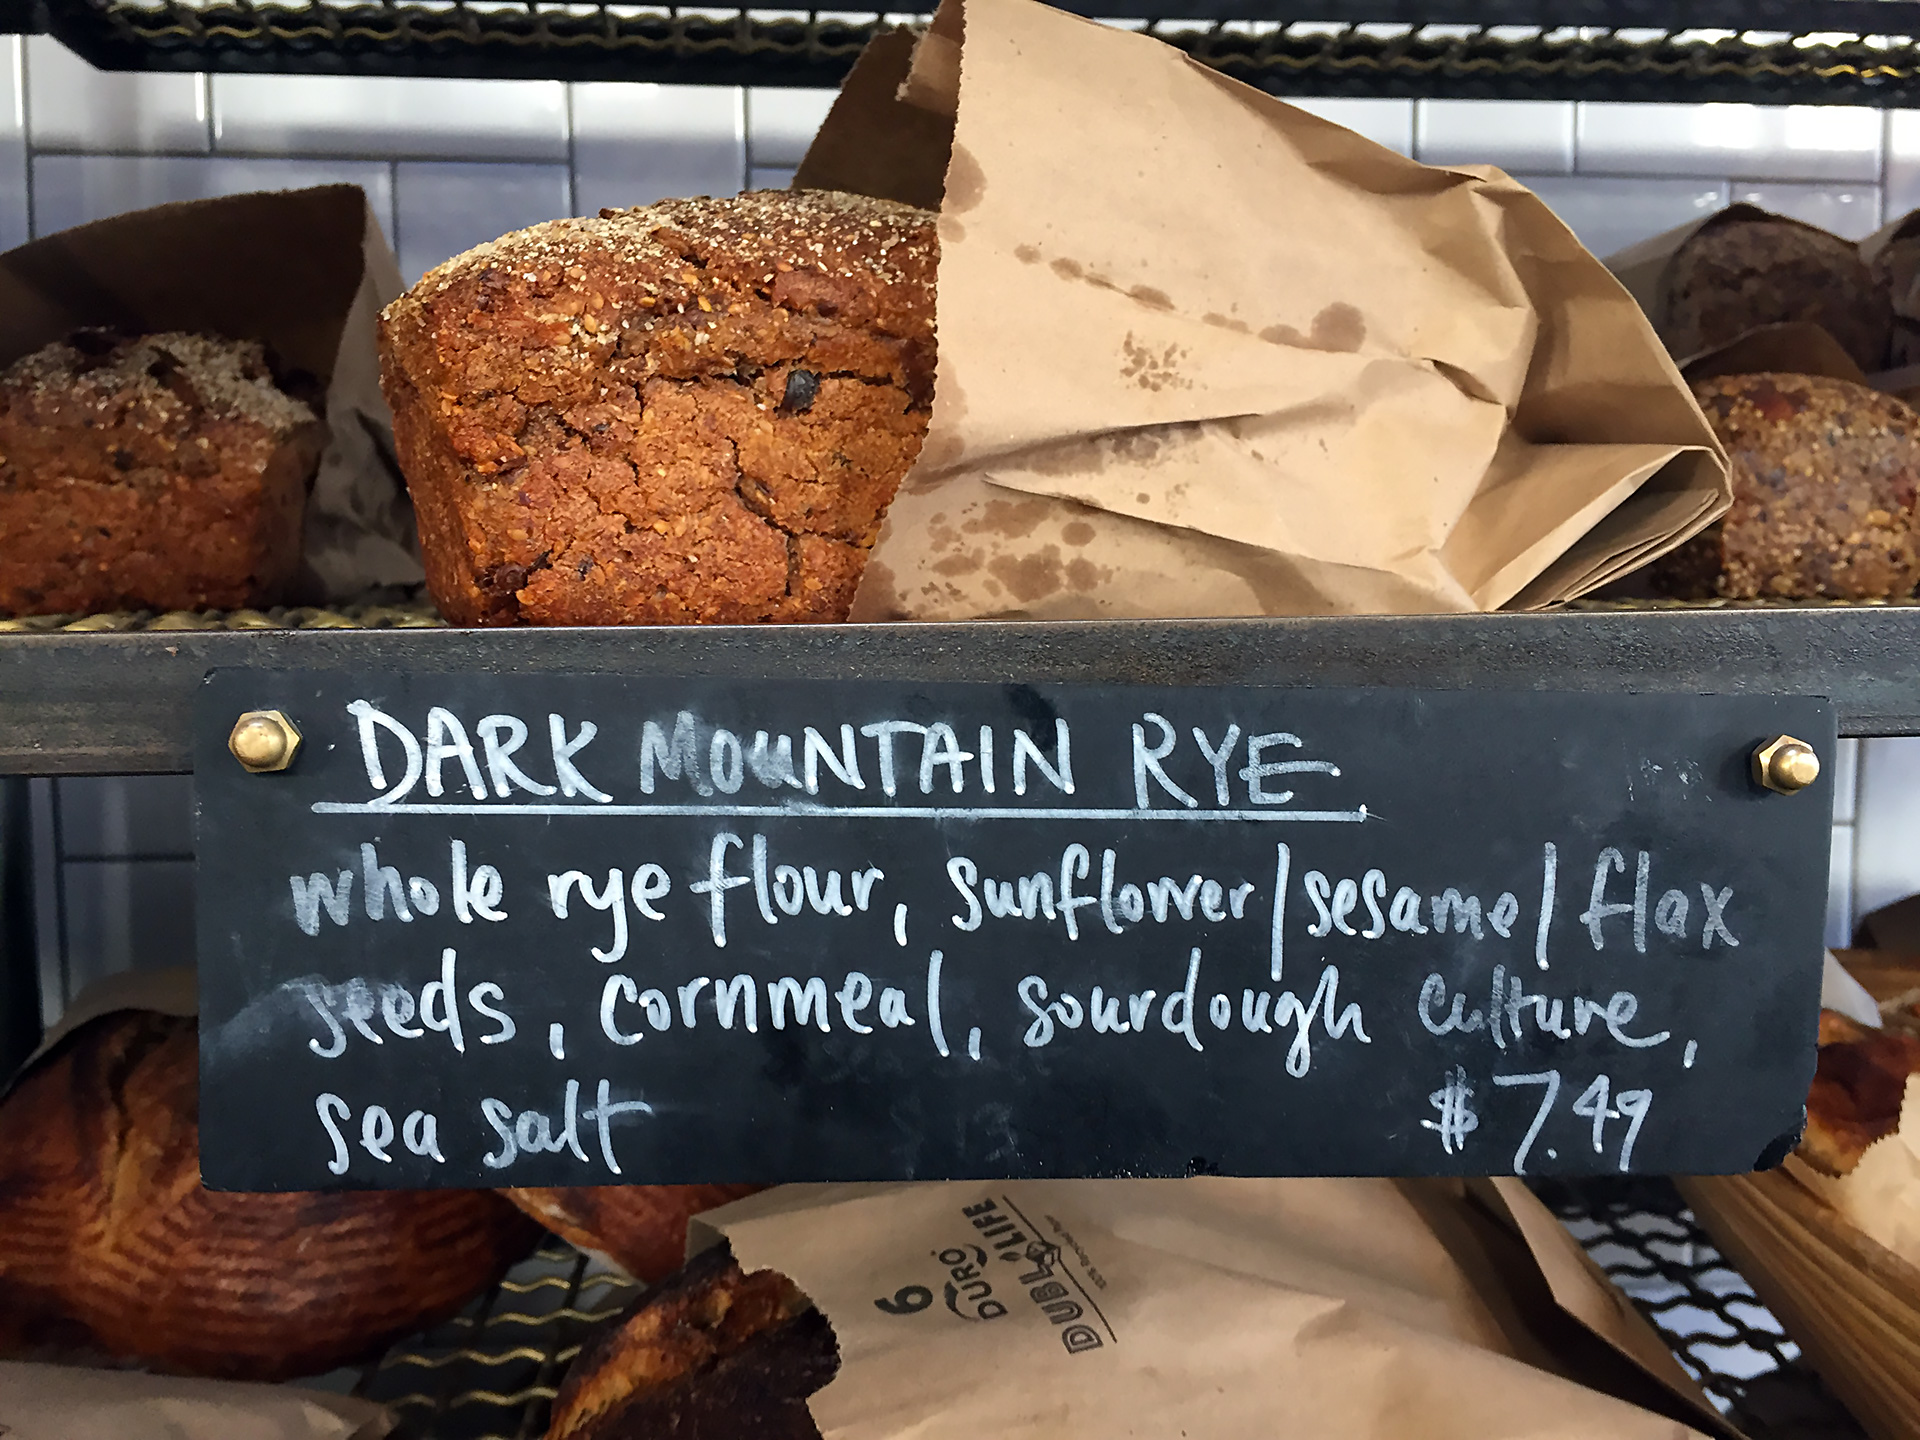 Josey Baker Dark Mountain Rye bread for sale at The Mill.